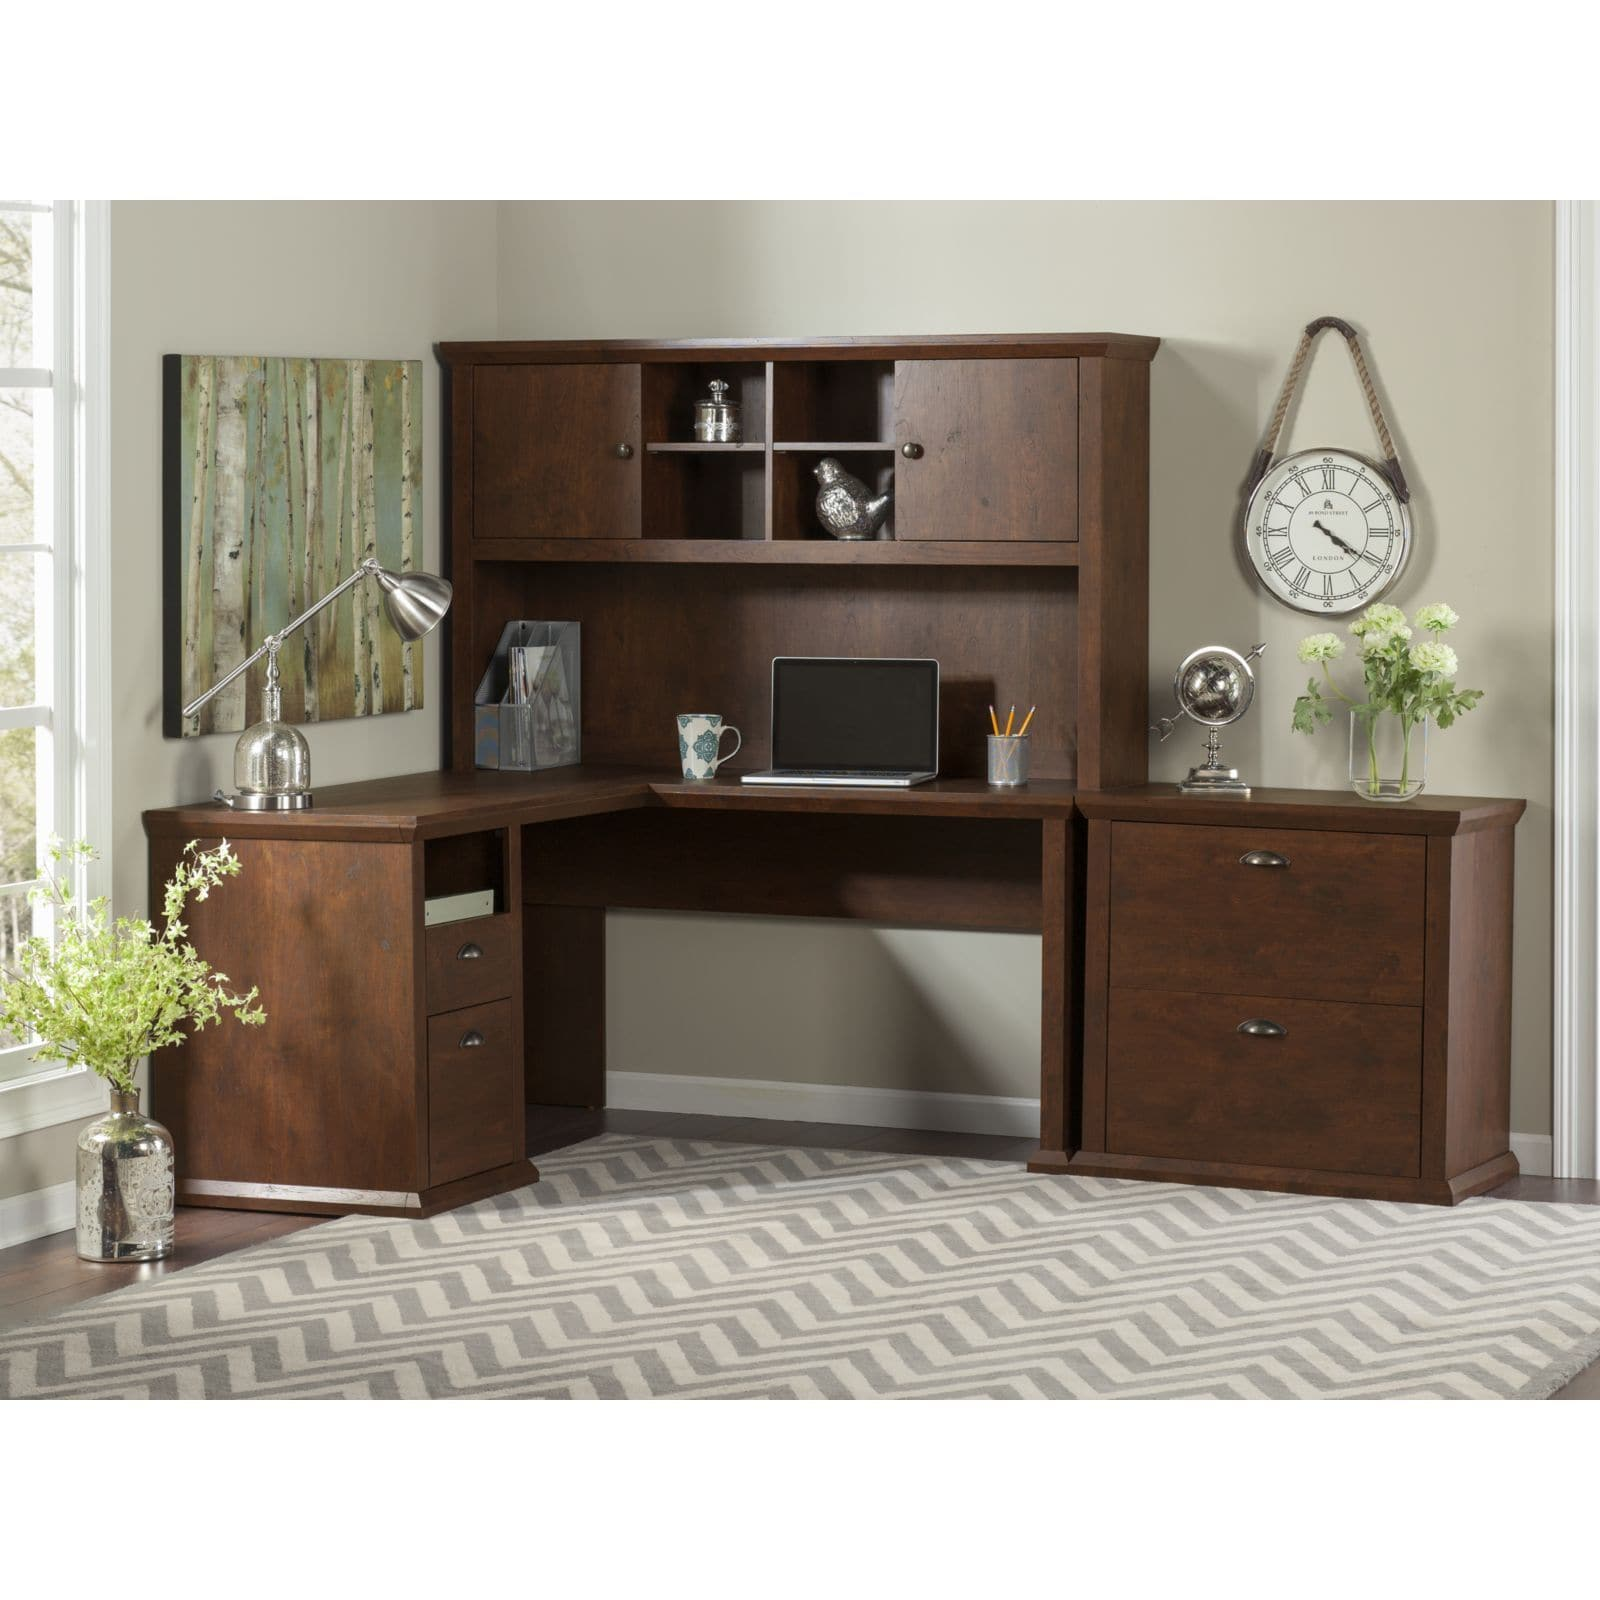 Bush Furniture Yorktown L Shaped Desk with Hutch and Lateral File Cabinet